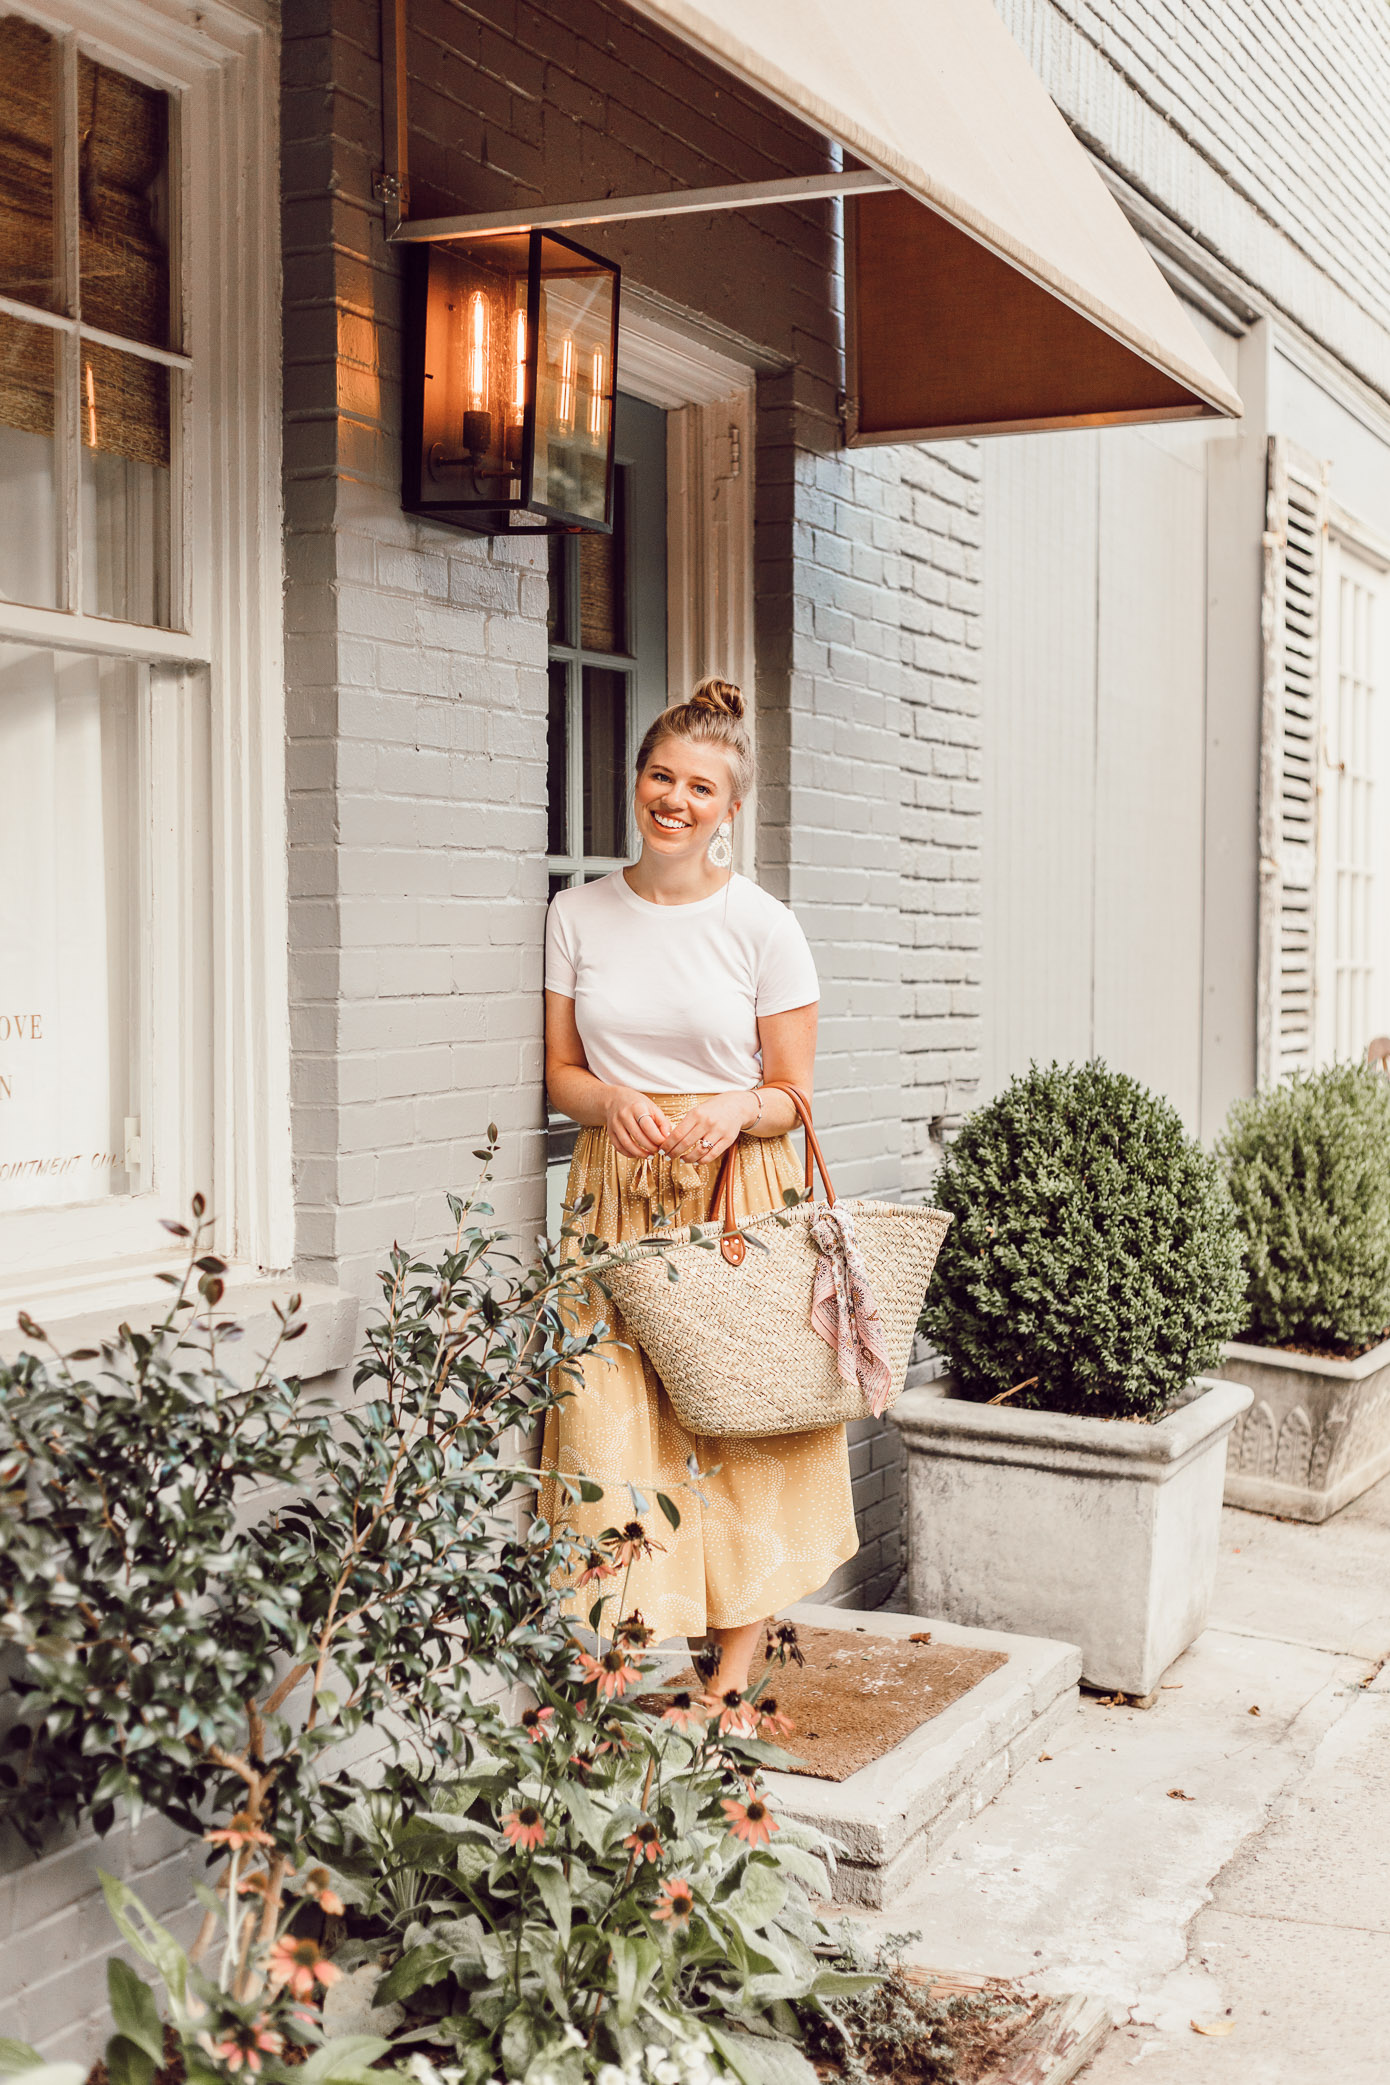 Step Out of Your Color Comfort Zone | Basic White Tee, Yellow Midi Skirt, Straw Tote styled on Louella Reese